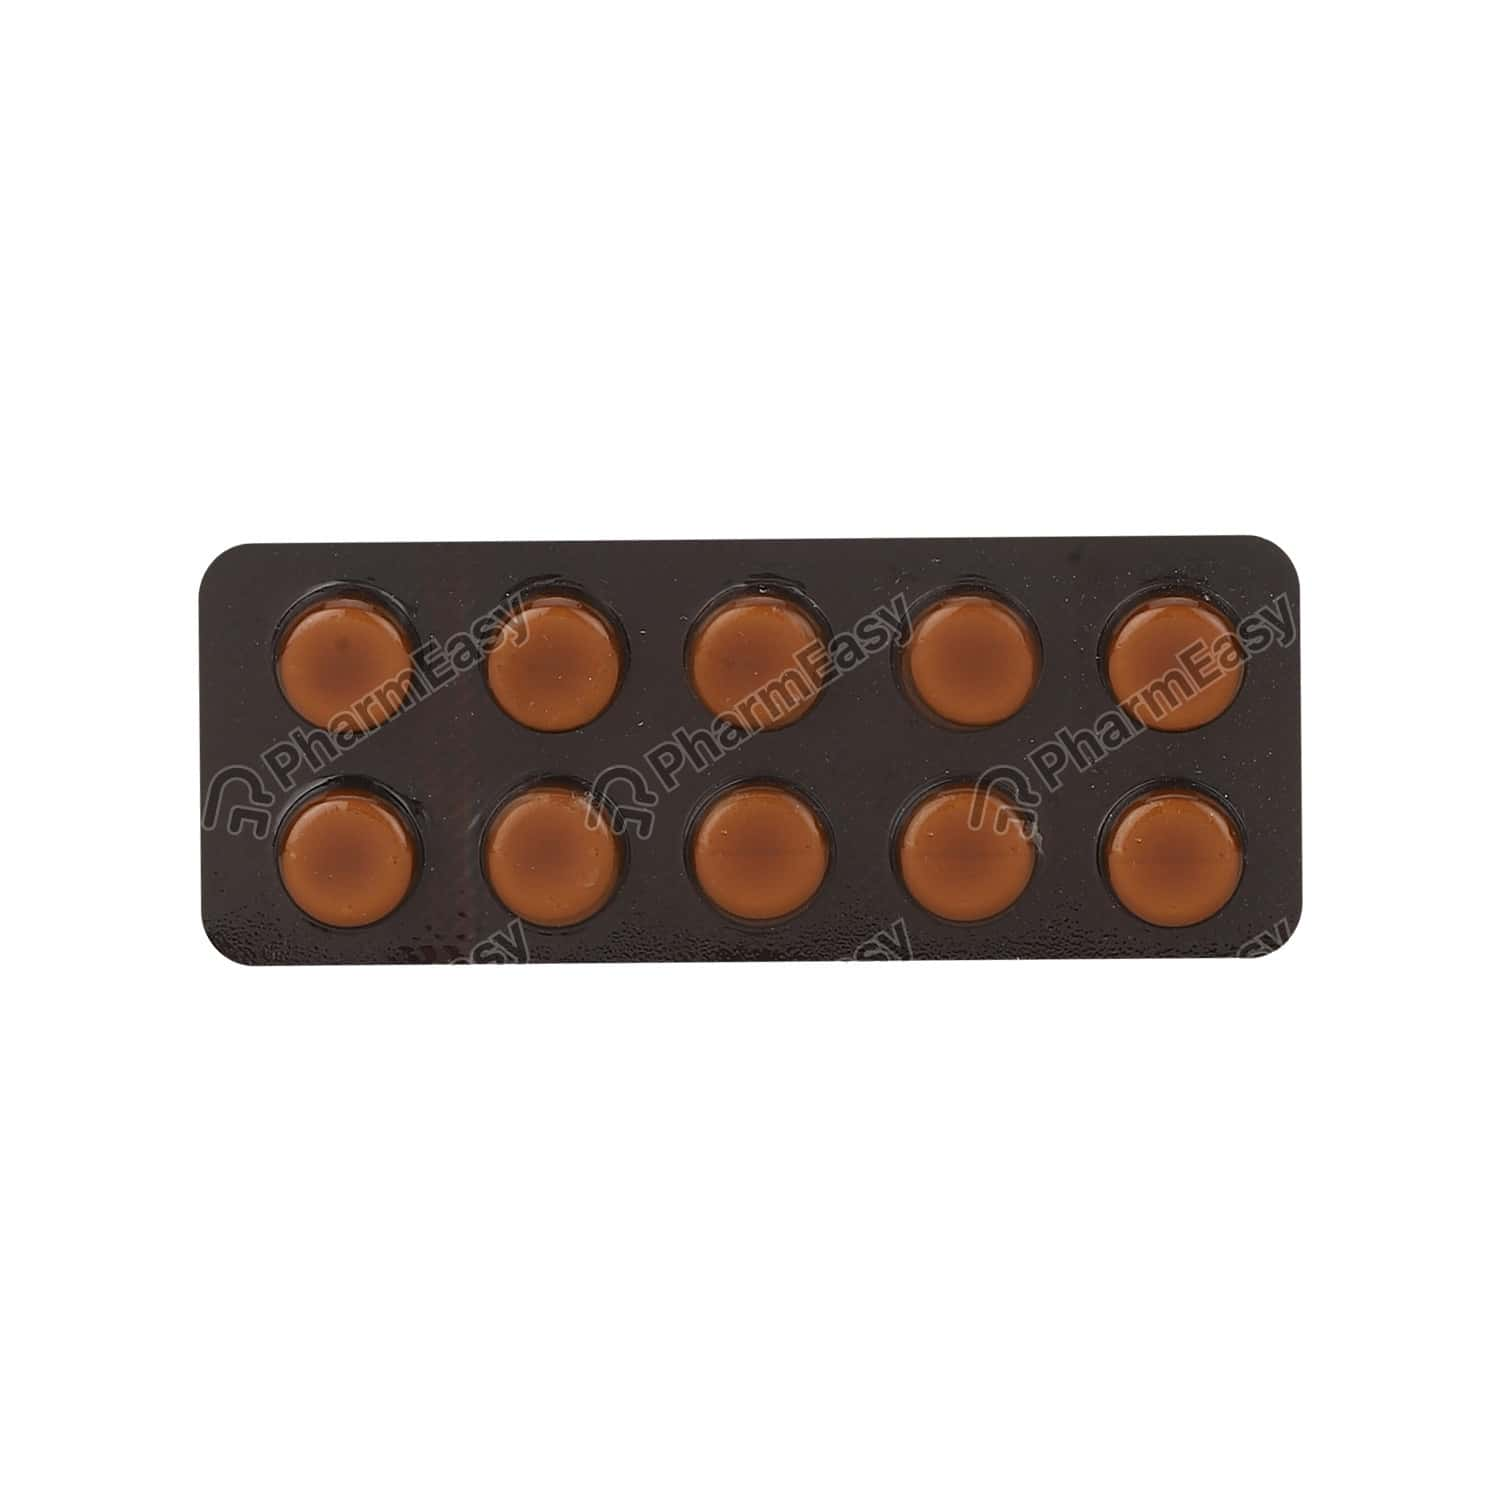 Pionorm 30mg Tablet